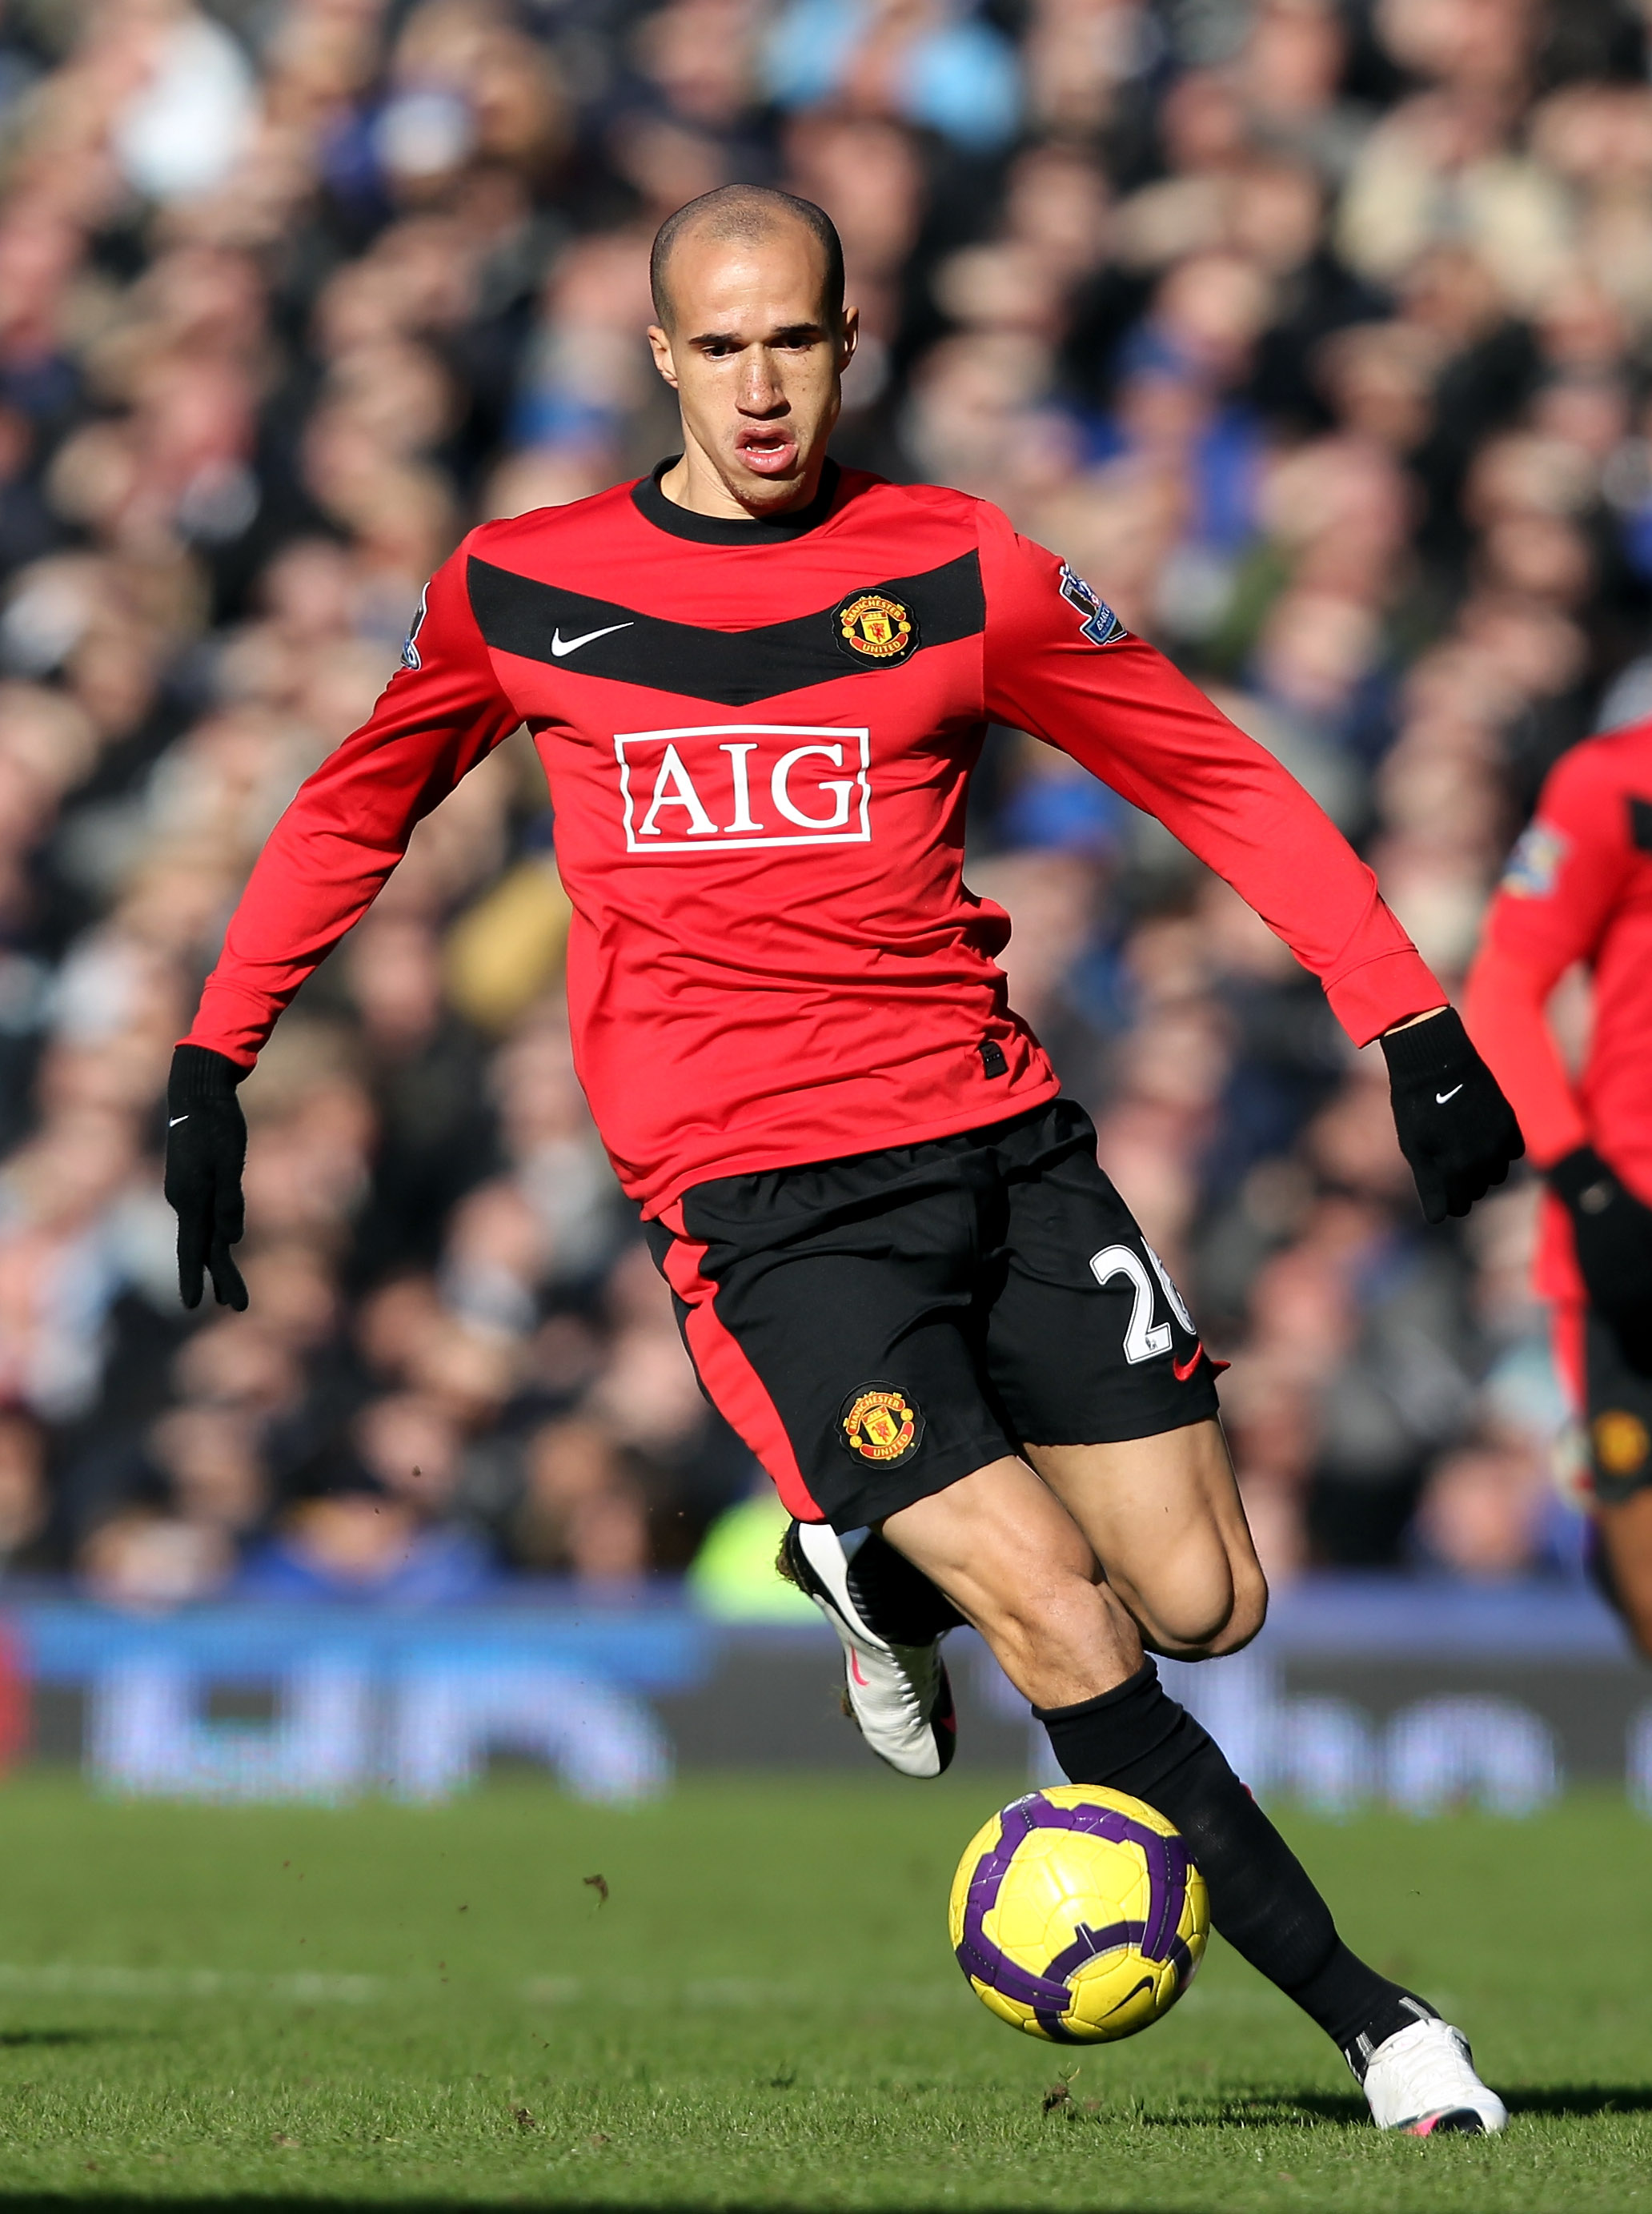 LIVERPOOL, ENGLAND - FEBRUARY 20:  Gabriel Obertan of Manchester during the Barclays Premiership match between Everton and Manchester United at Goodison Park on February 20, 2010 in Liverpool, England.  (Photo by Ross Kinnaird/Getty Images)